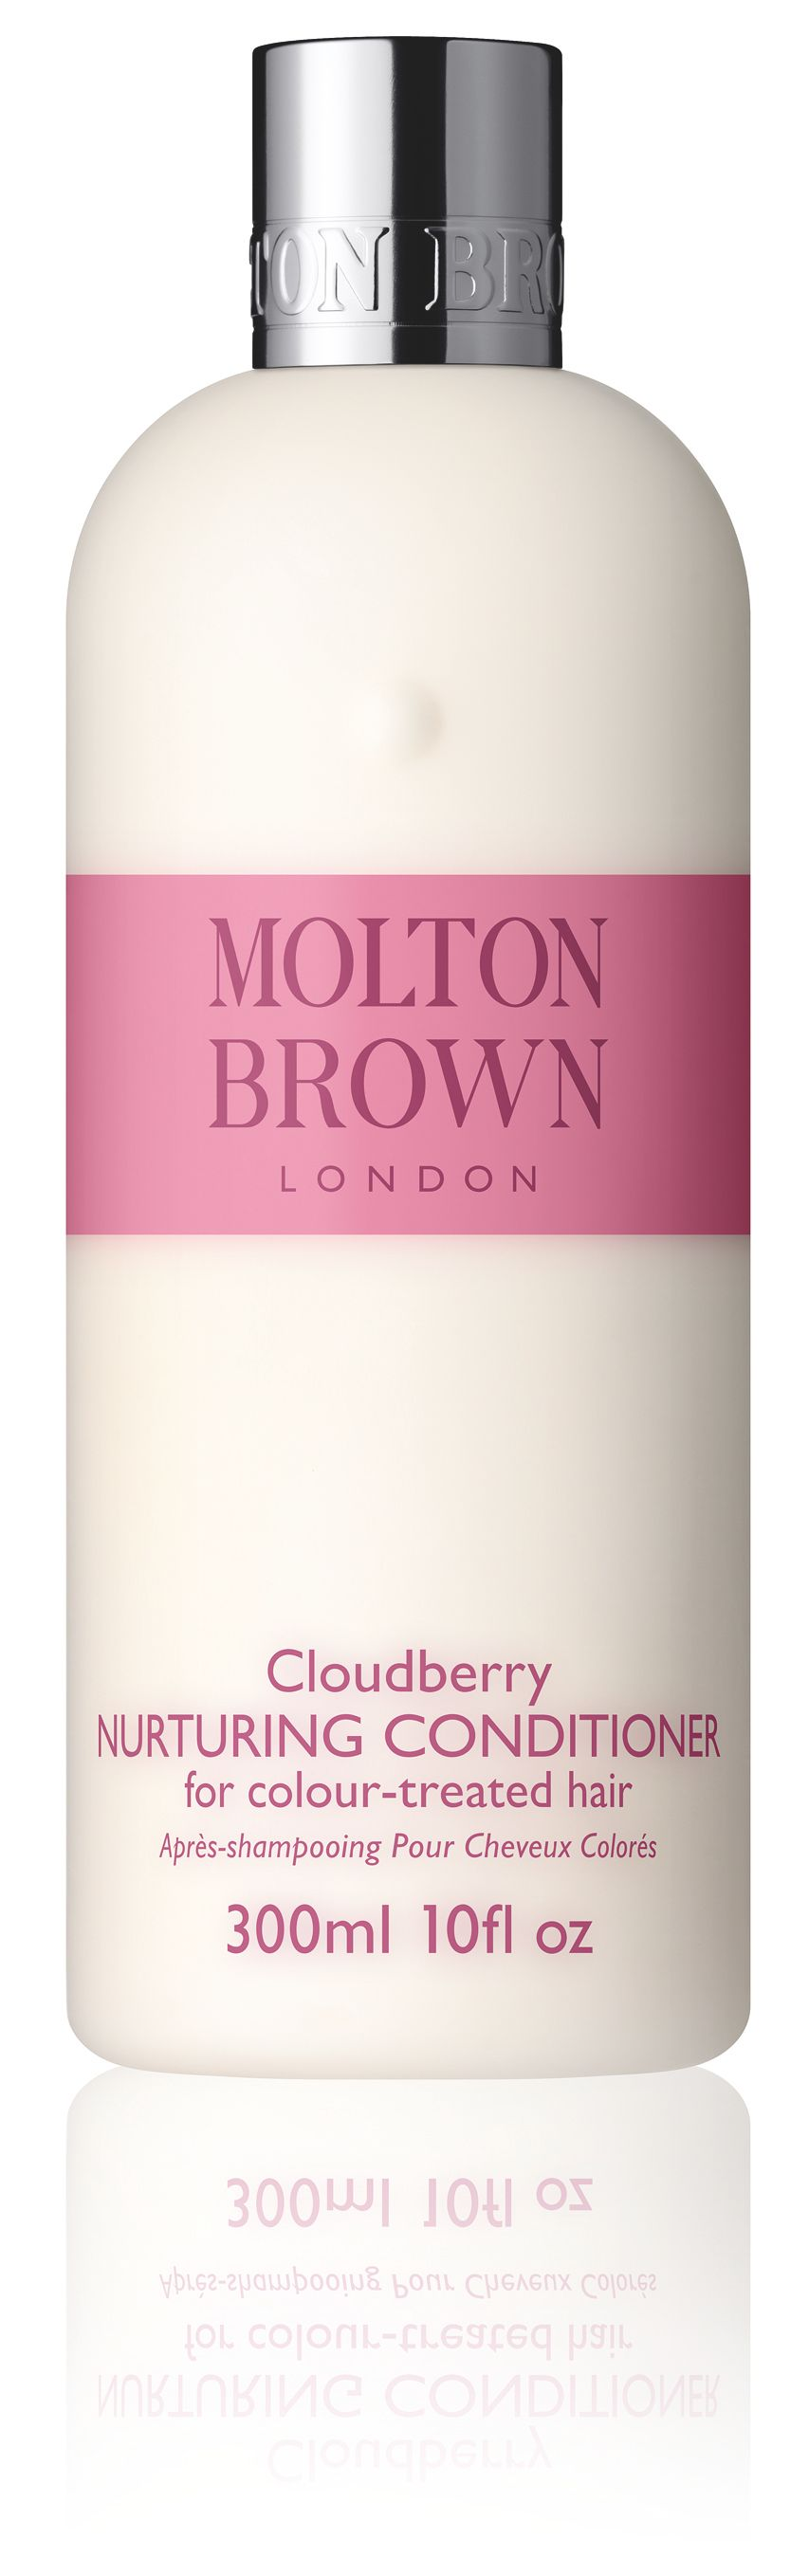 Cloudberry Nurturing Conditioner